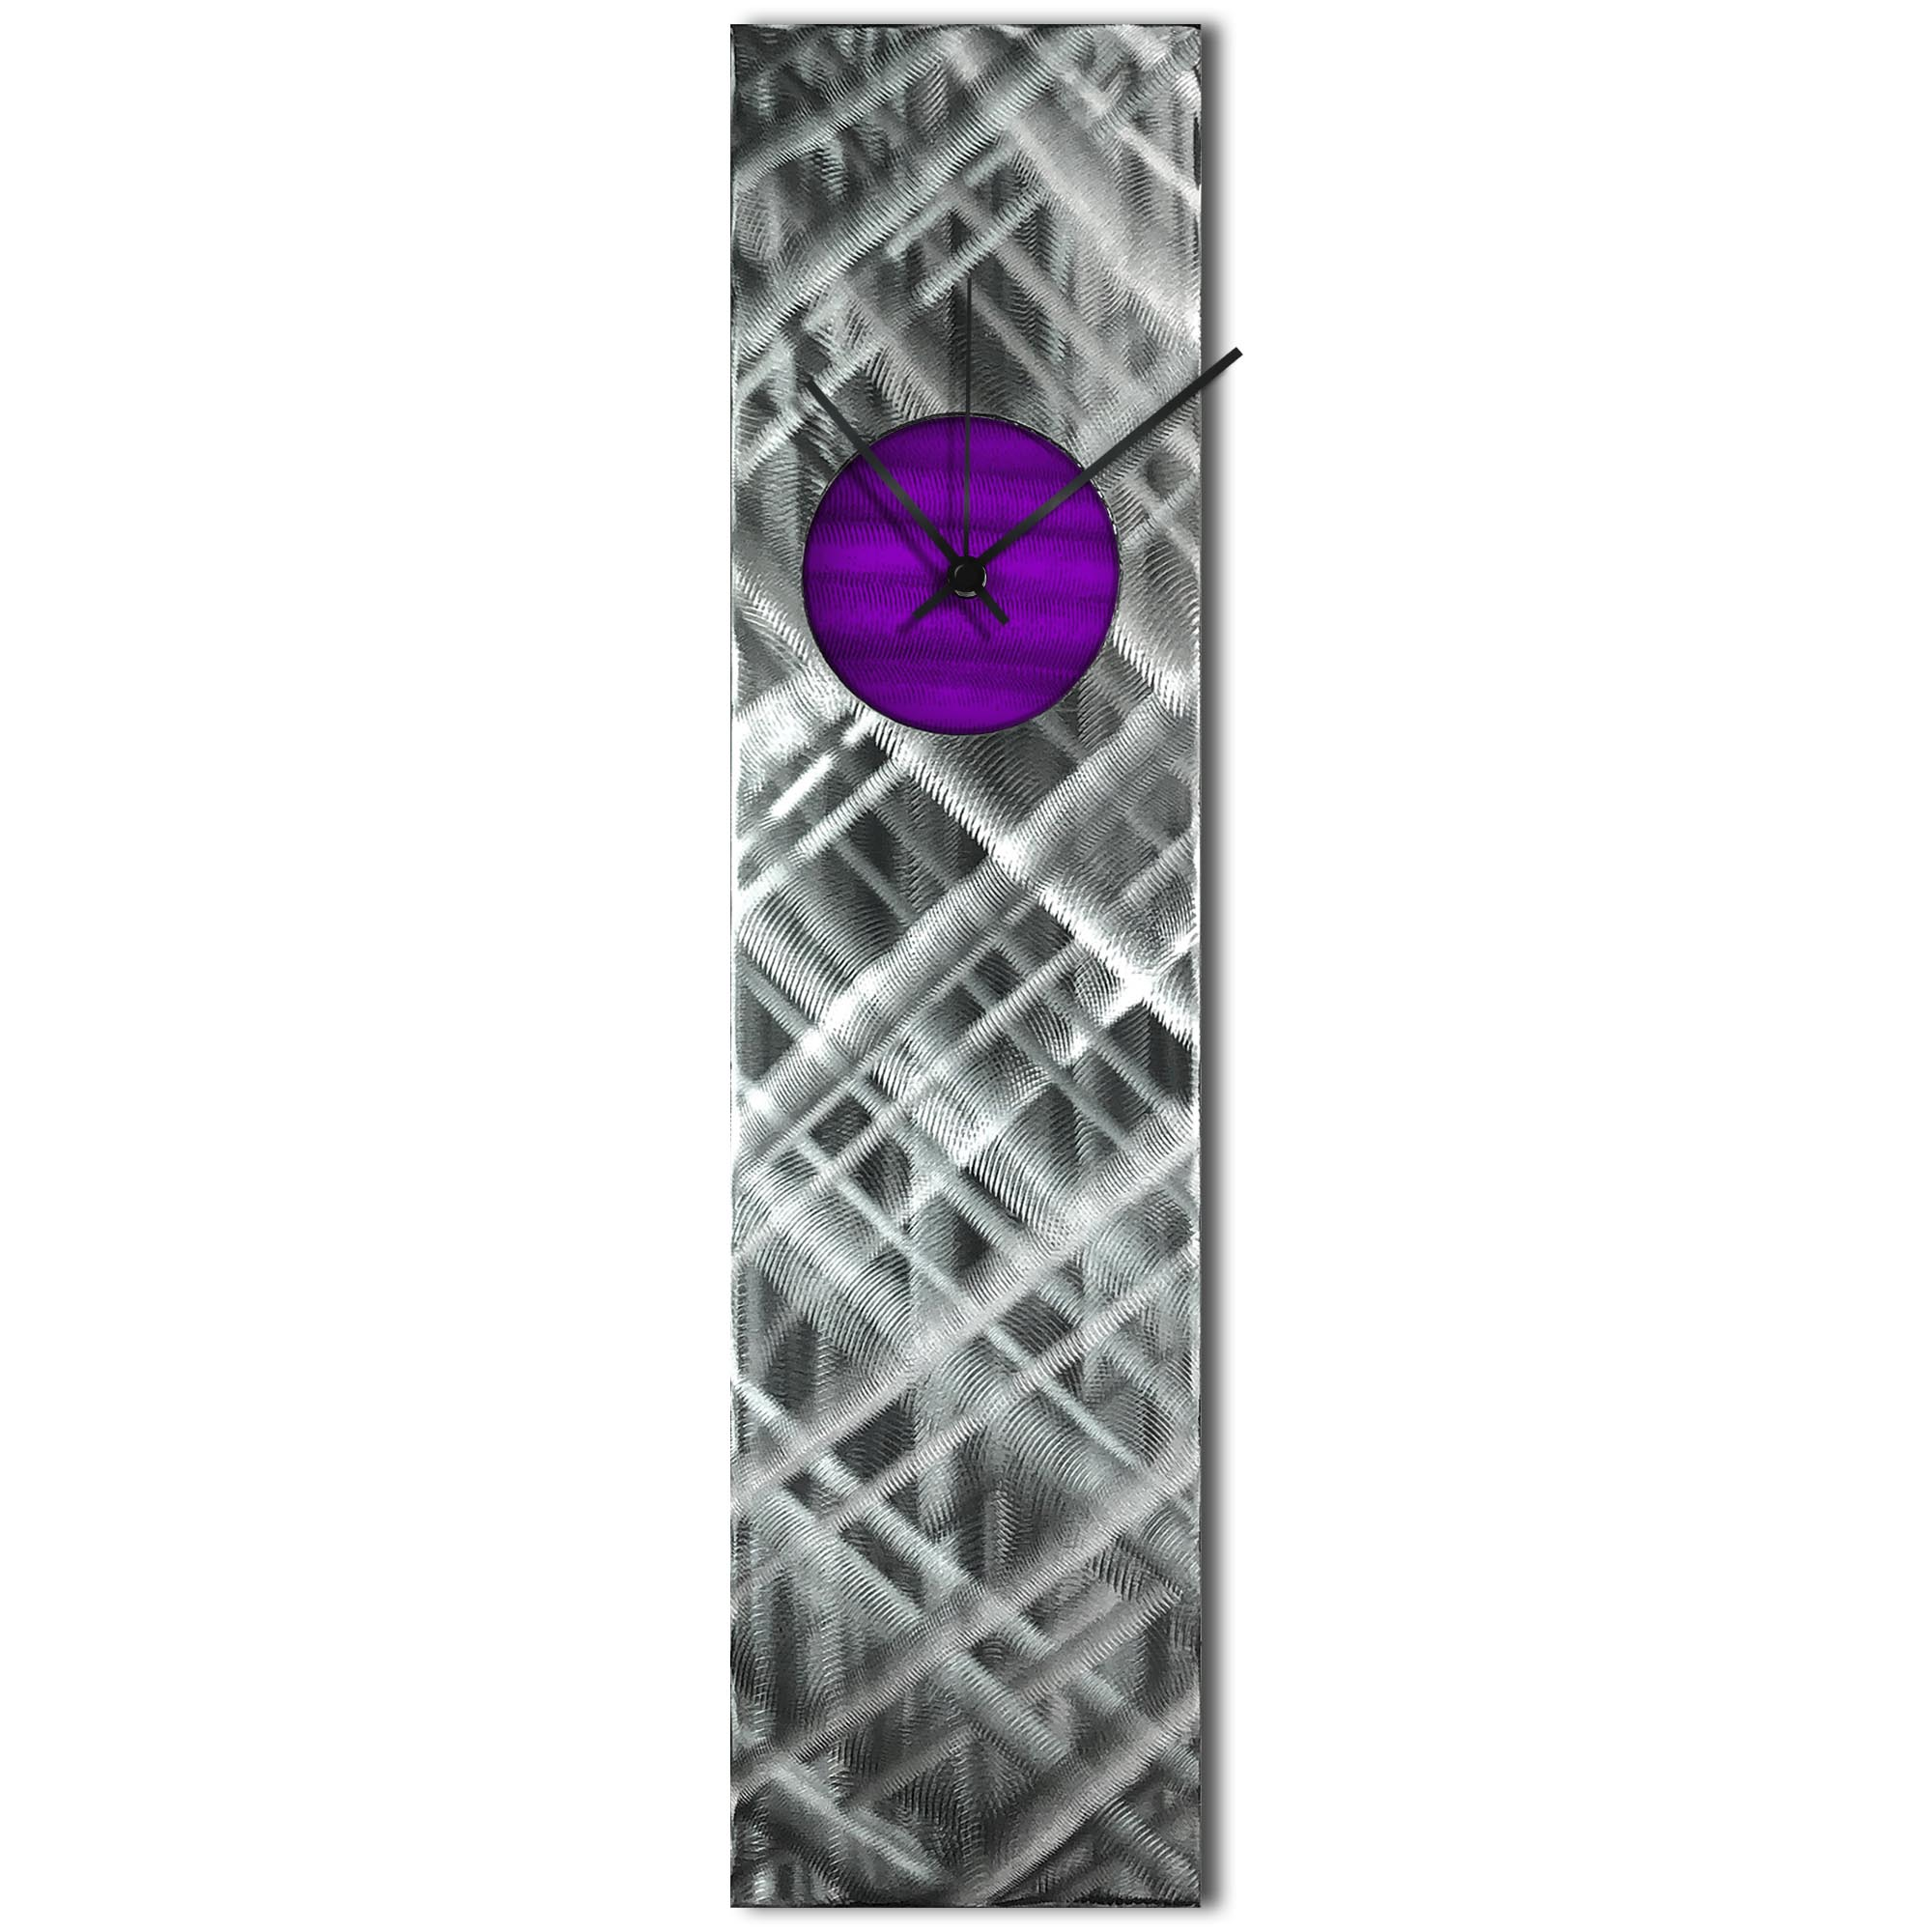 Helena Martin 'Plaid Relief Clock Purple' 6in x 24in Modern Wall Clock on Ground and Painted Metal